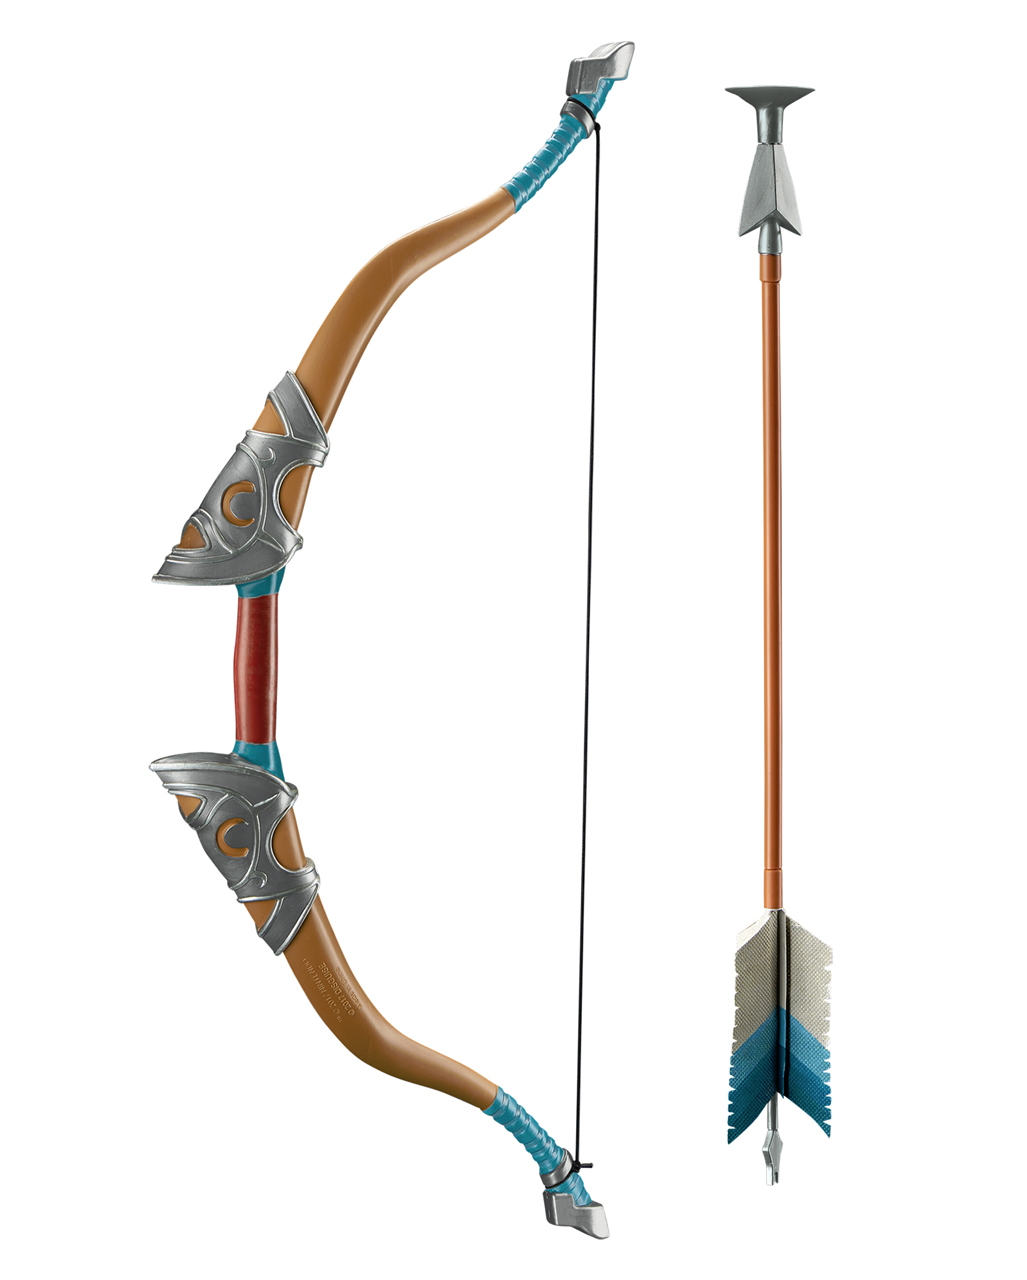 Legend Of Zelda Link Bow And Arrow till  ae8d8e4fca90f